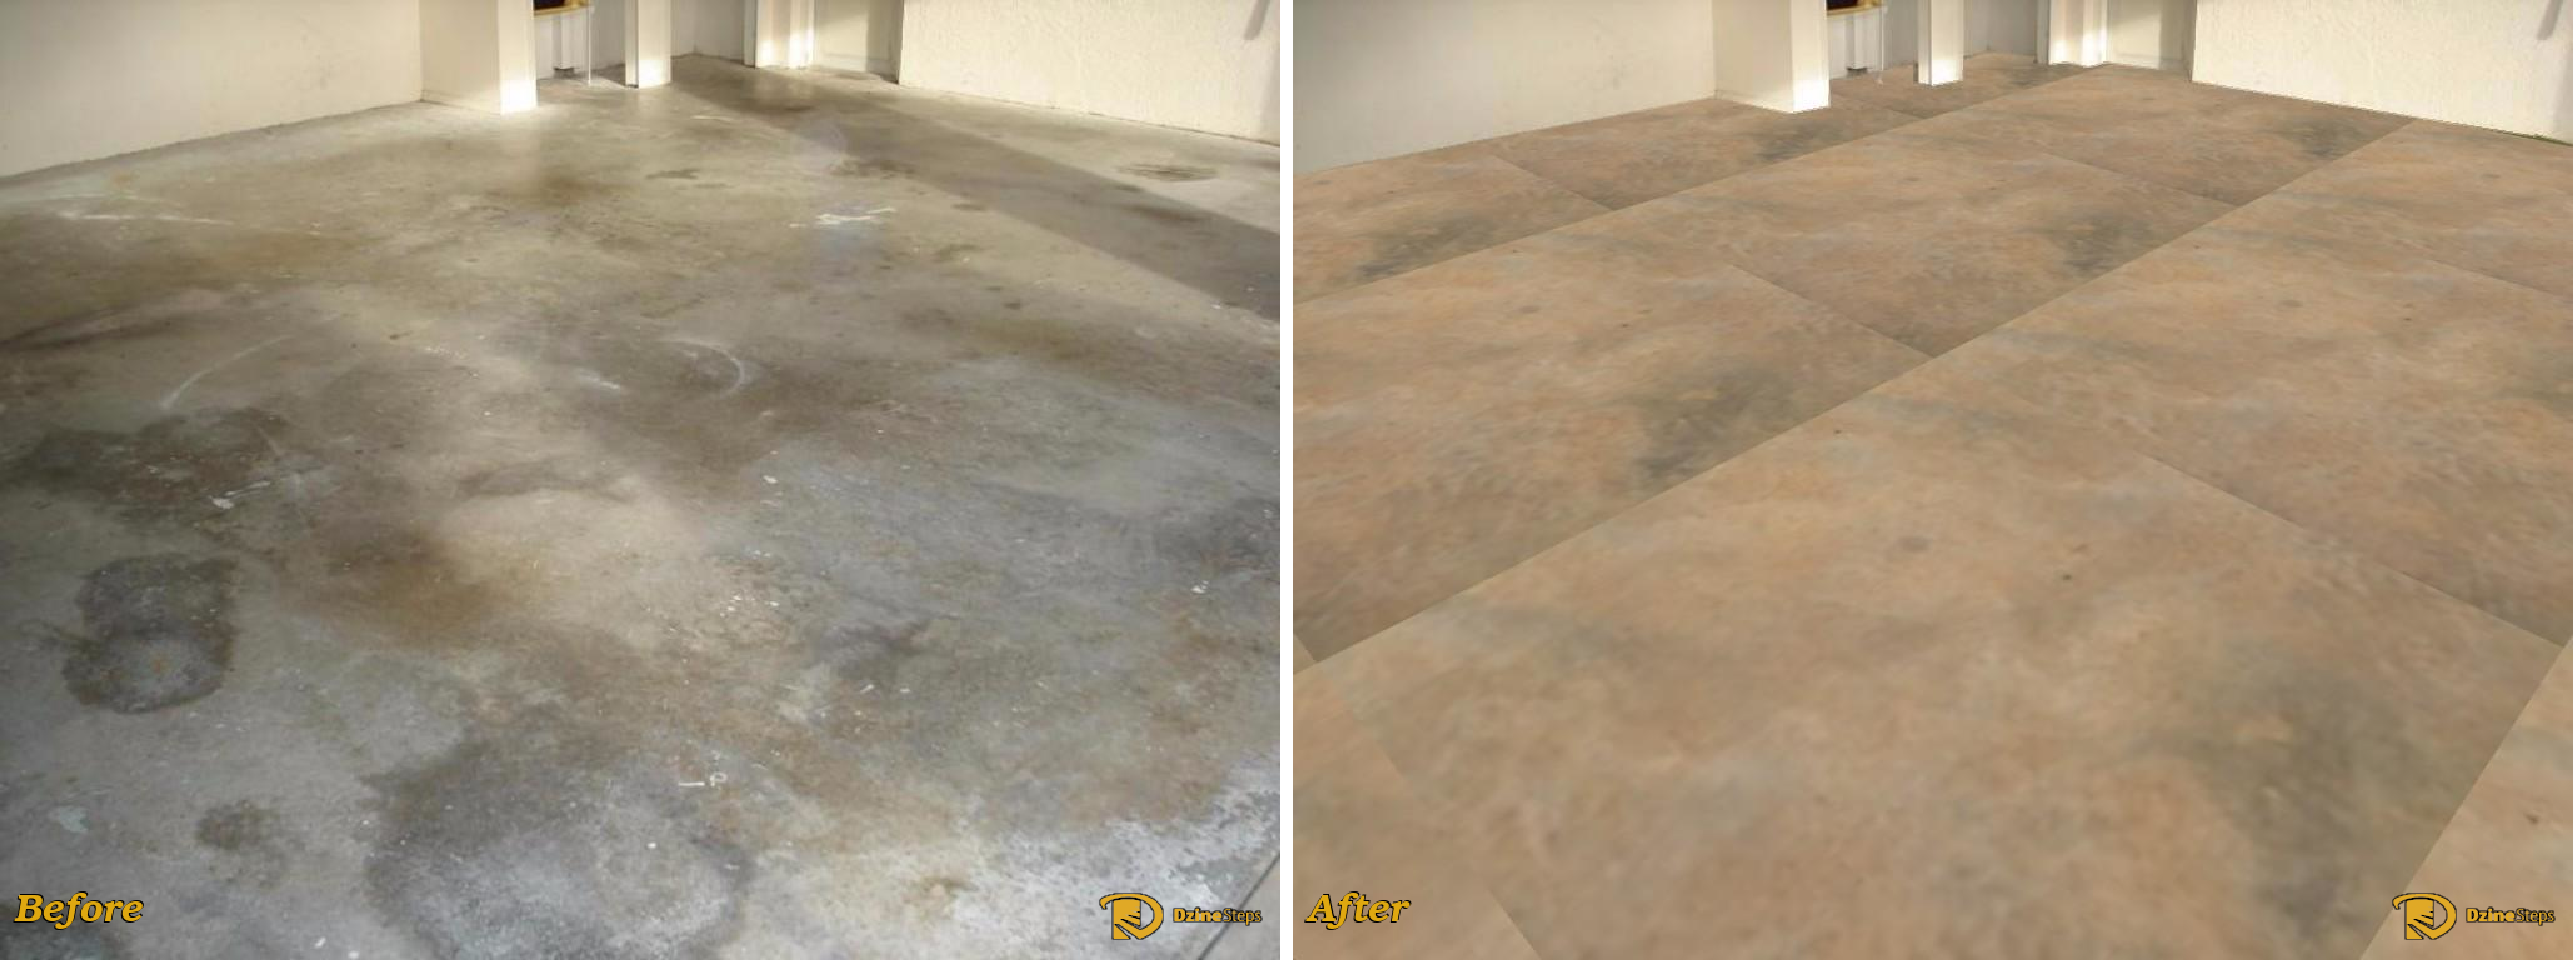 pinterest up fix floor concrete pin reviews basement epoxy garage coating